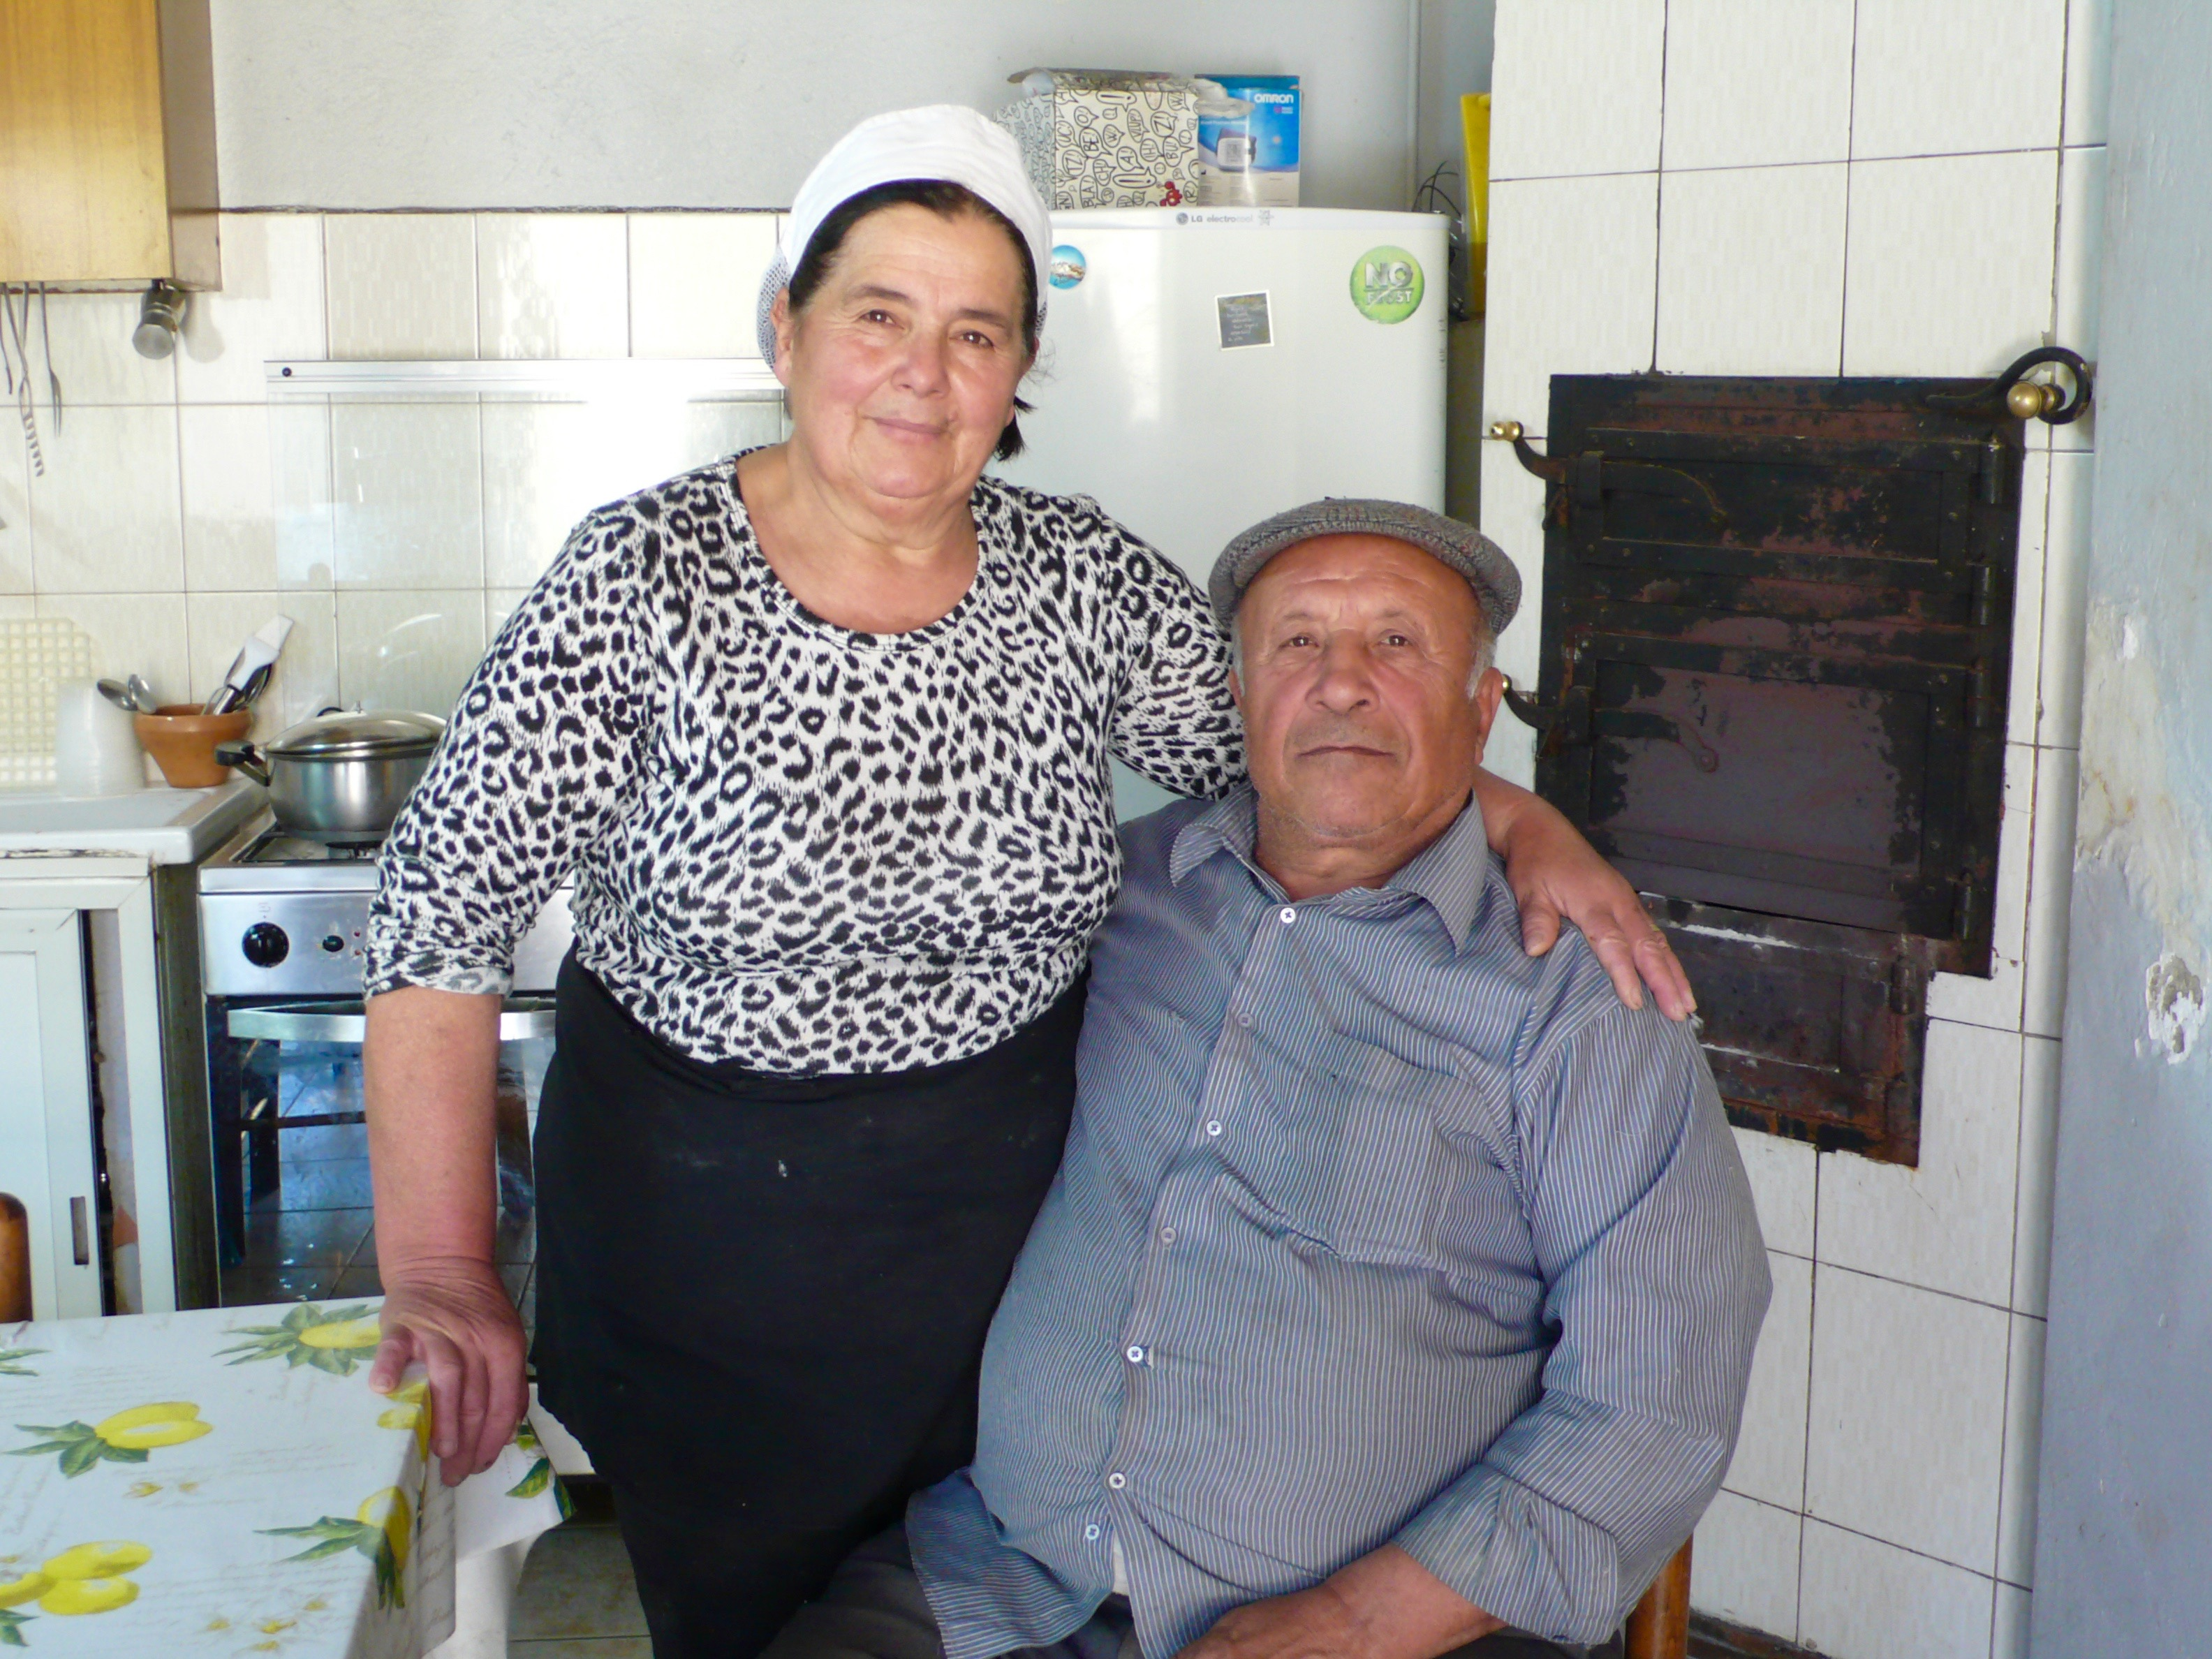 Ricotta Farmers Maria and her husband of 45 years, Nino.